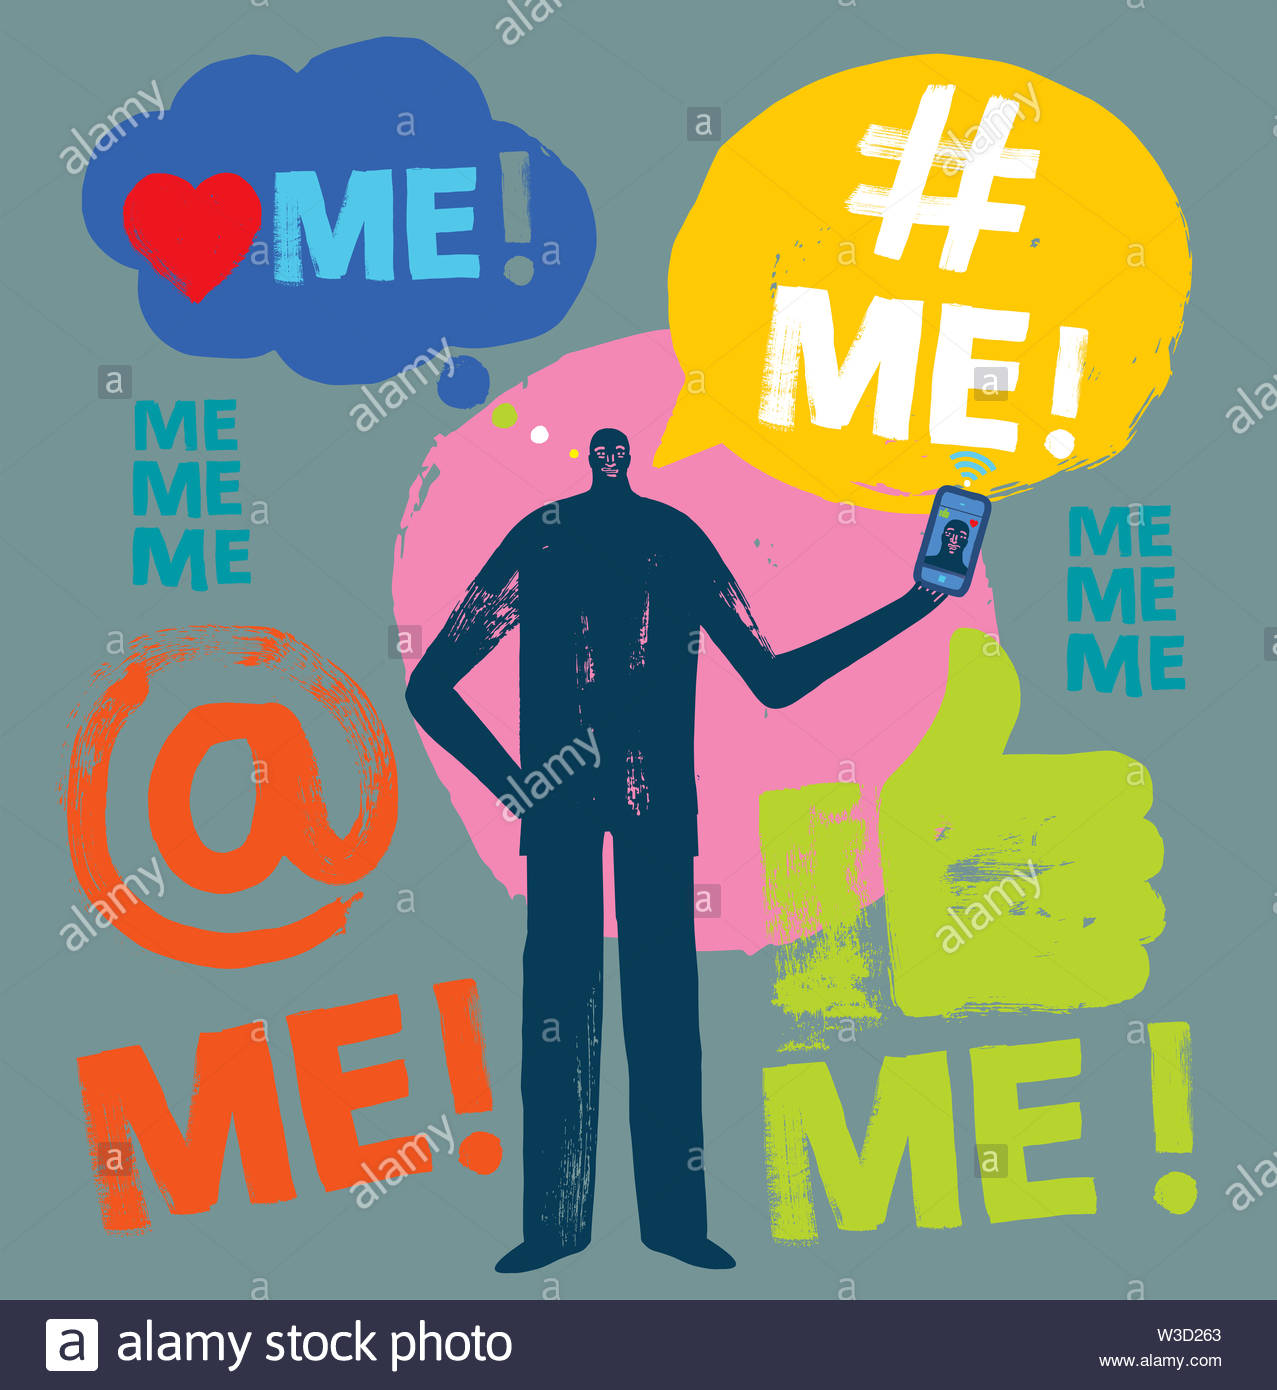 Colorful Illustration of person holding Smartphone, Social Media, Me Me Me, Text, Millennial Concept, Brush Stroke, Grunge Texture, Vector, - Stock Image